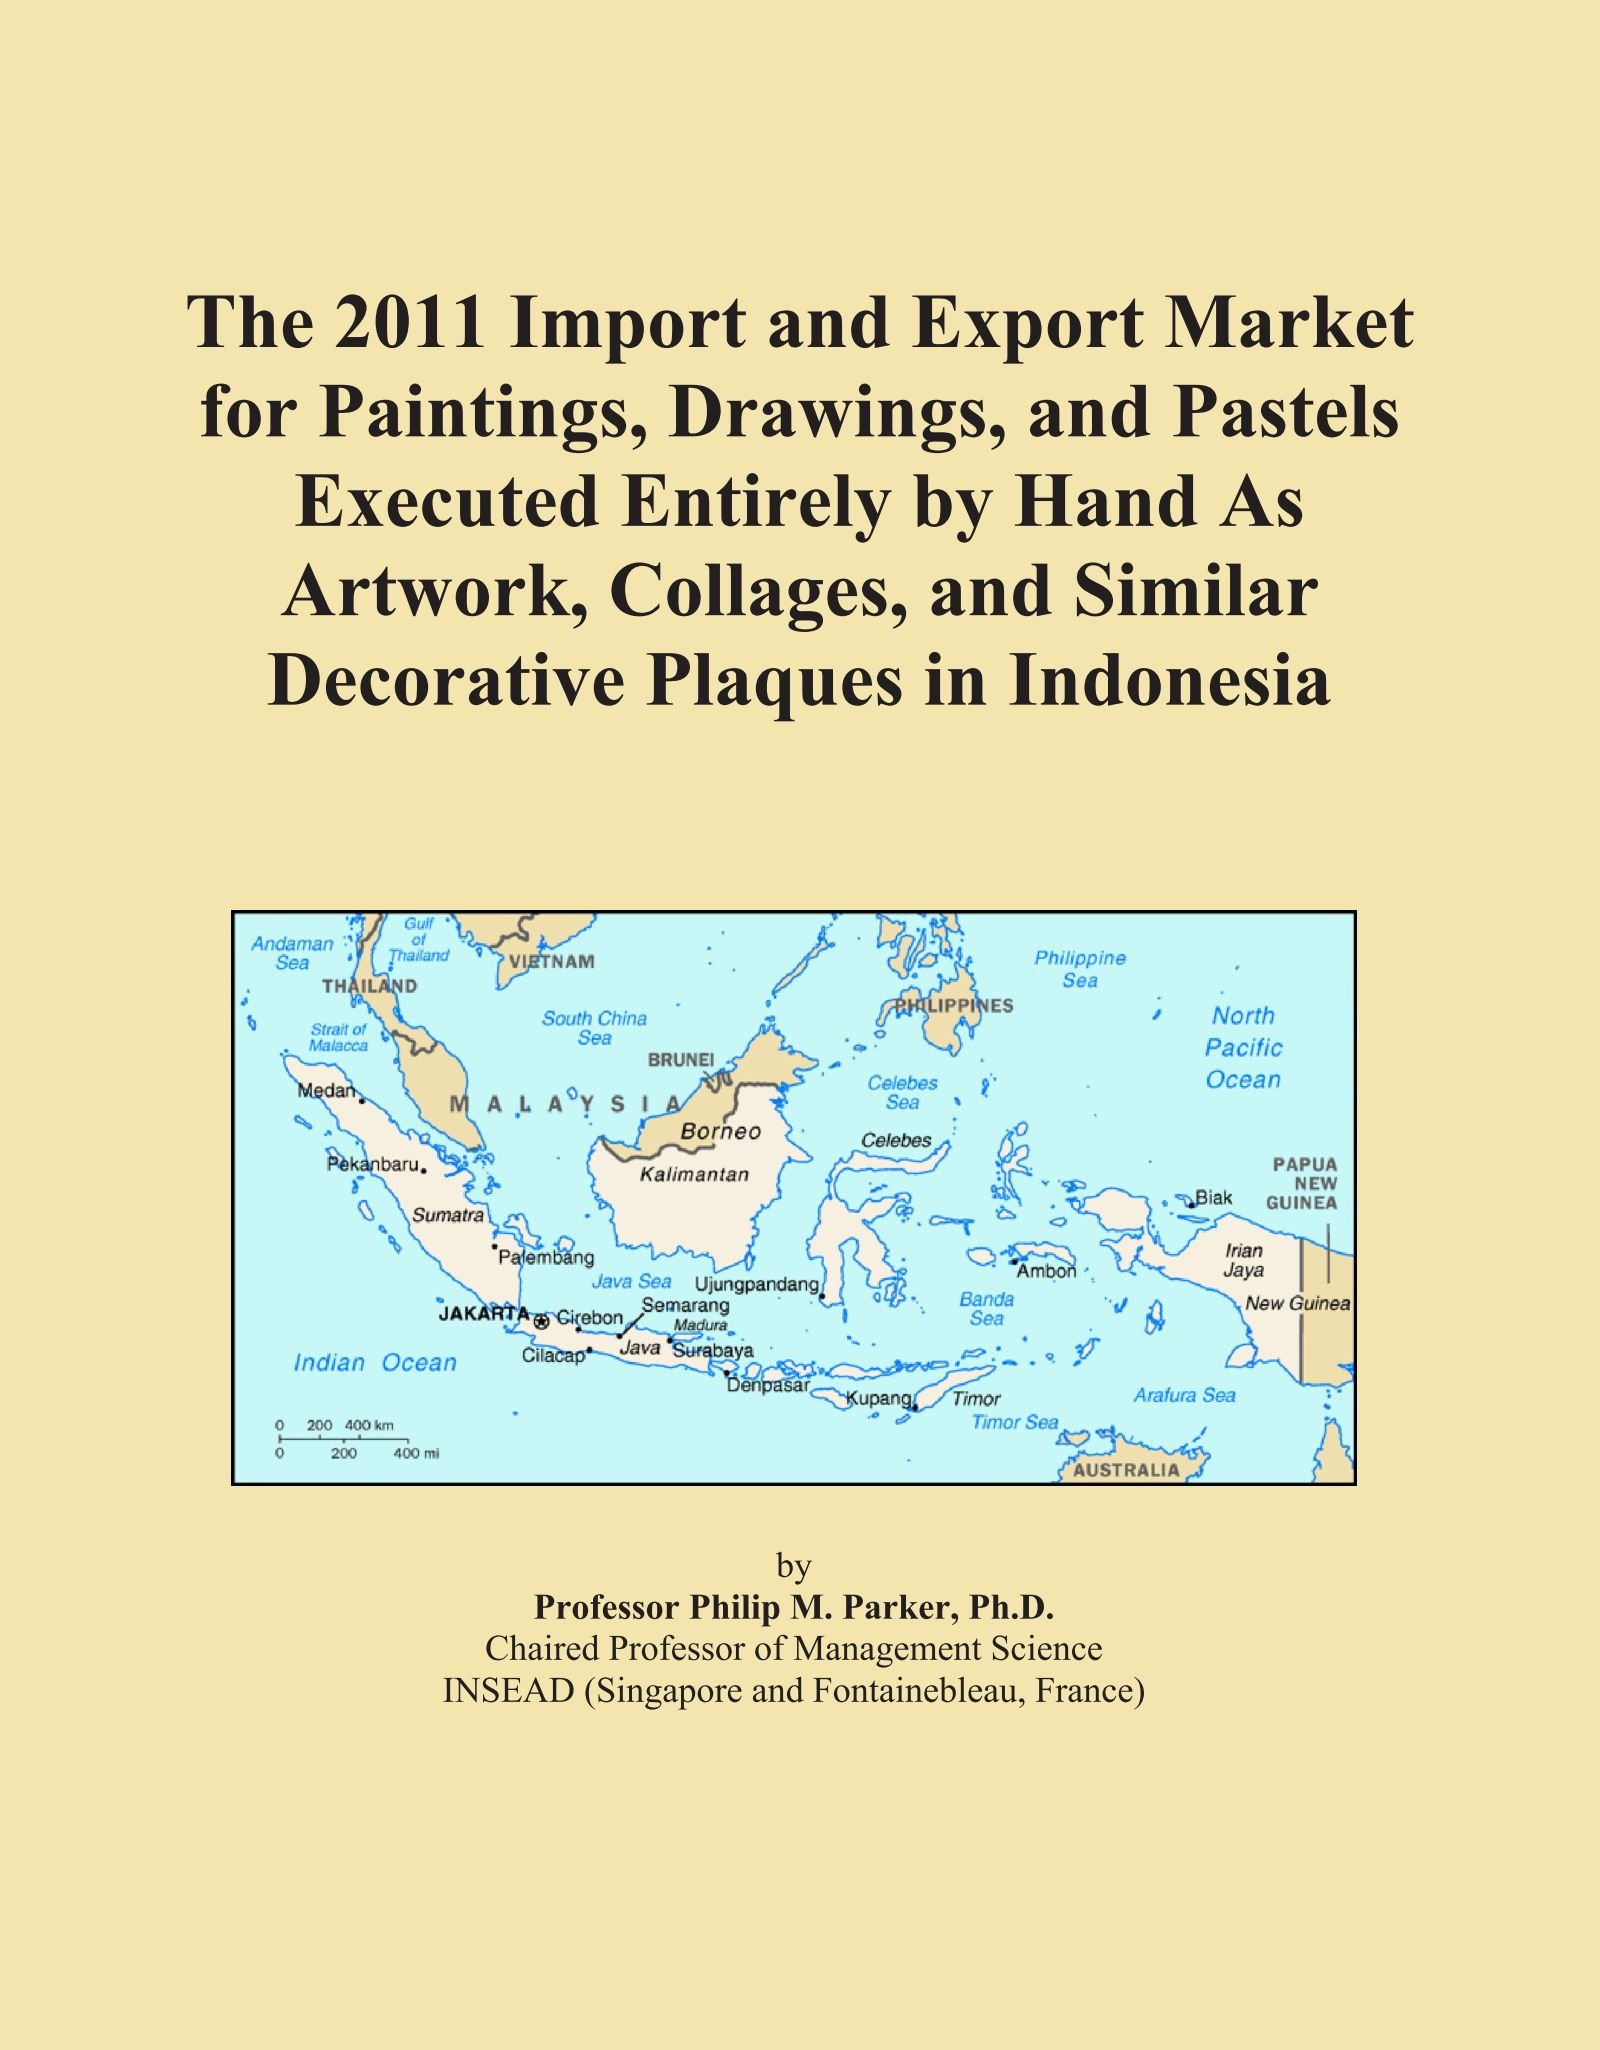 The 2011 Import and Export Market for Paintings, Drawings, and Pastels Executed Entirely by Hand As Artwork, Collages, and Similar Decorative Plaques in Indonesia PDF